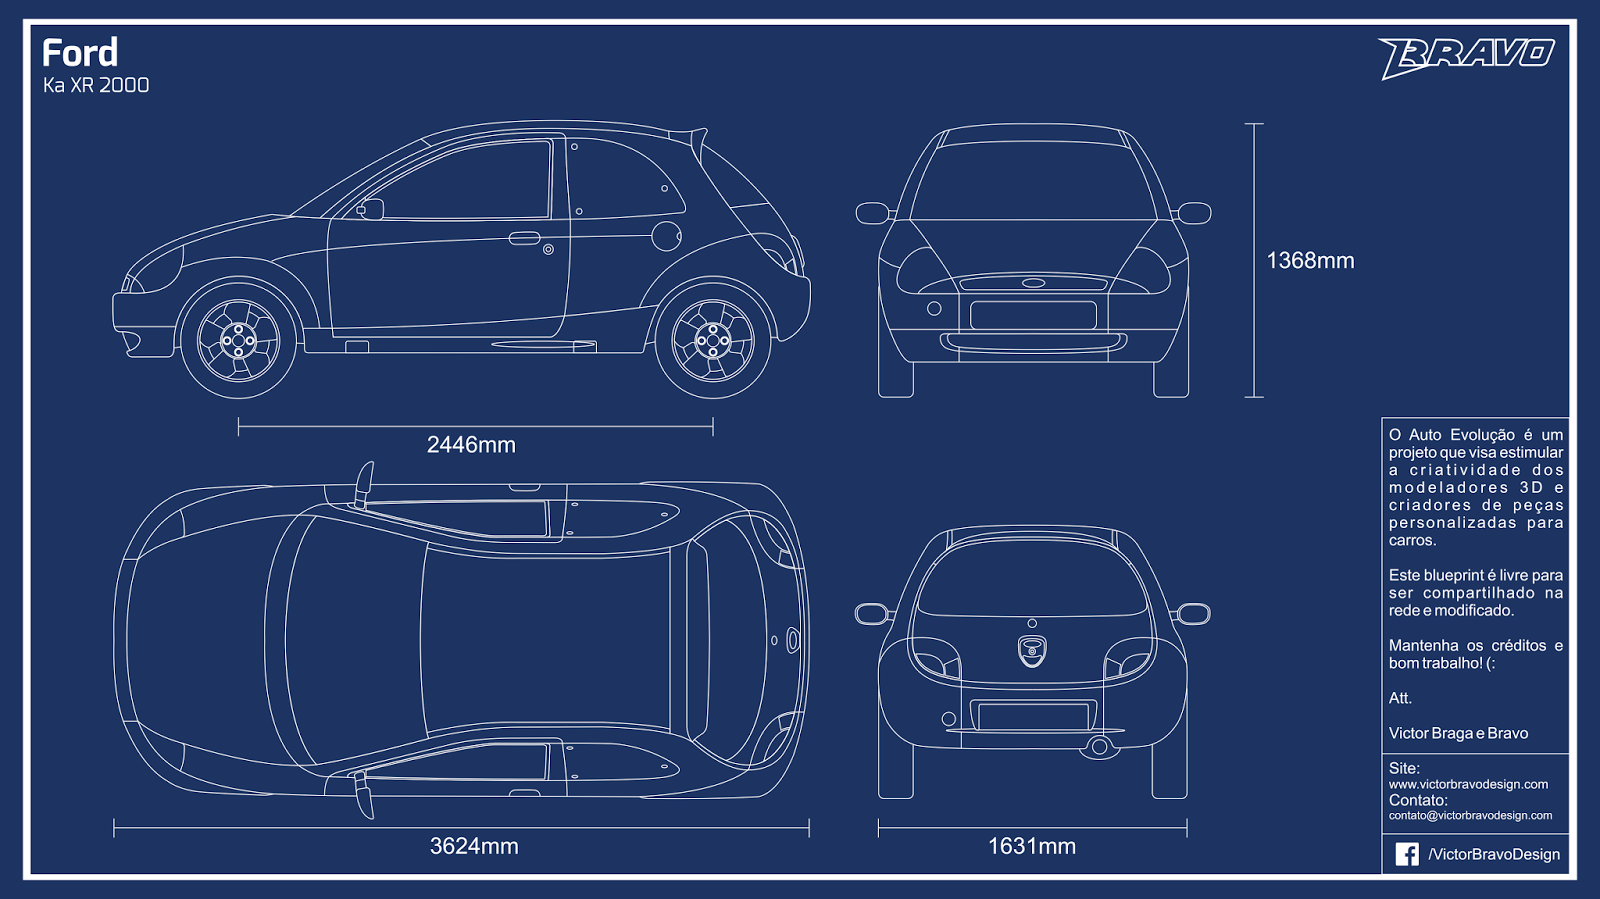 Imagem do blueprint do Ford Ka XR 2000